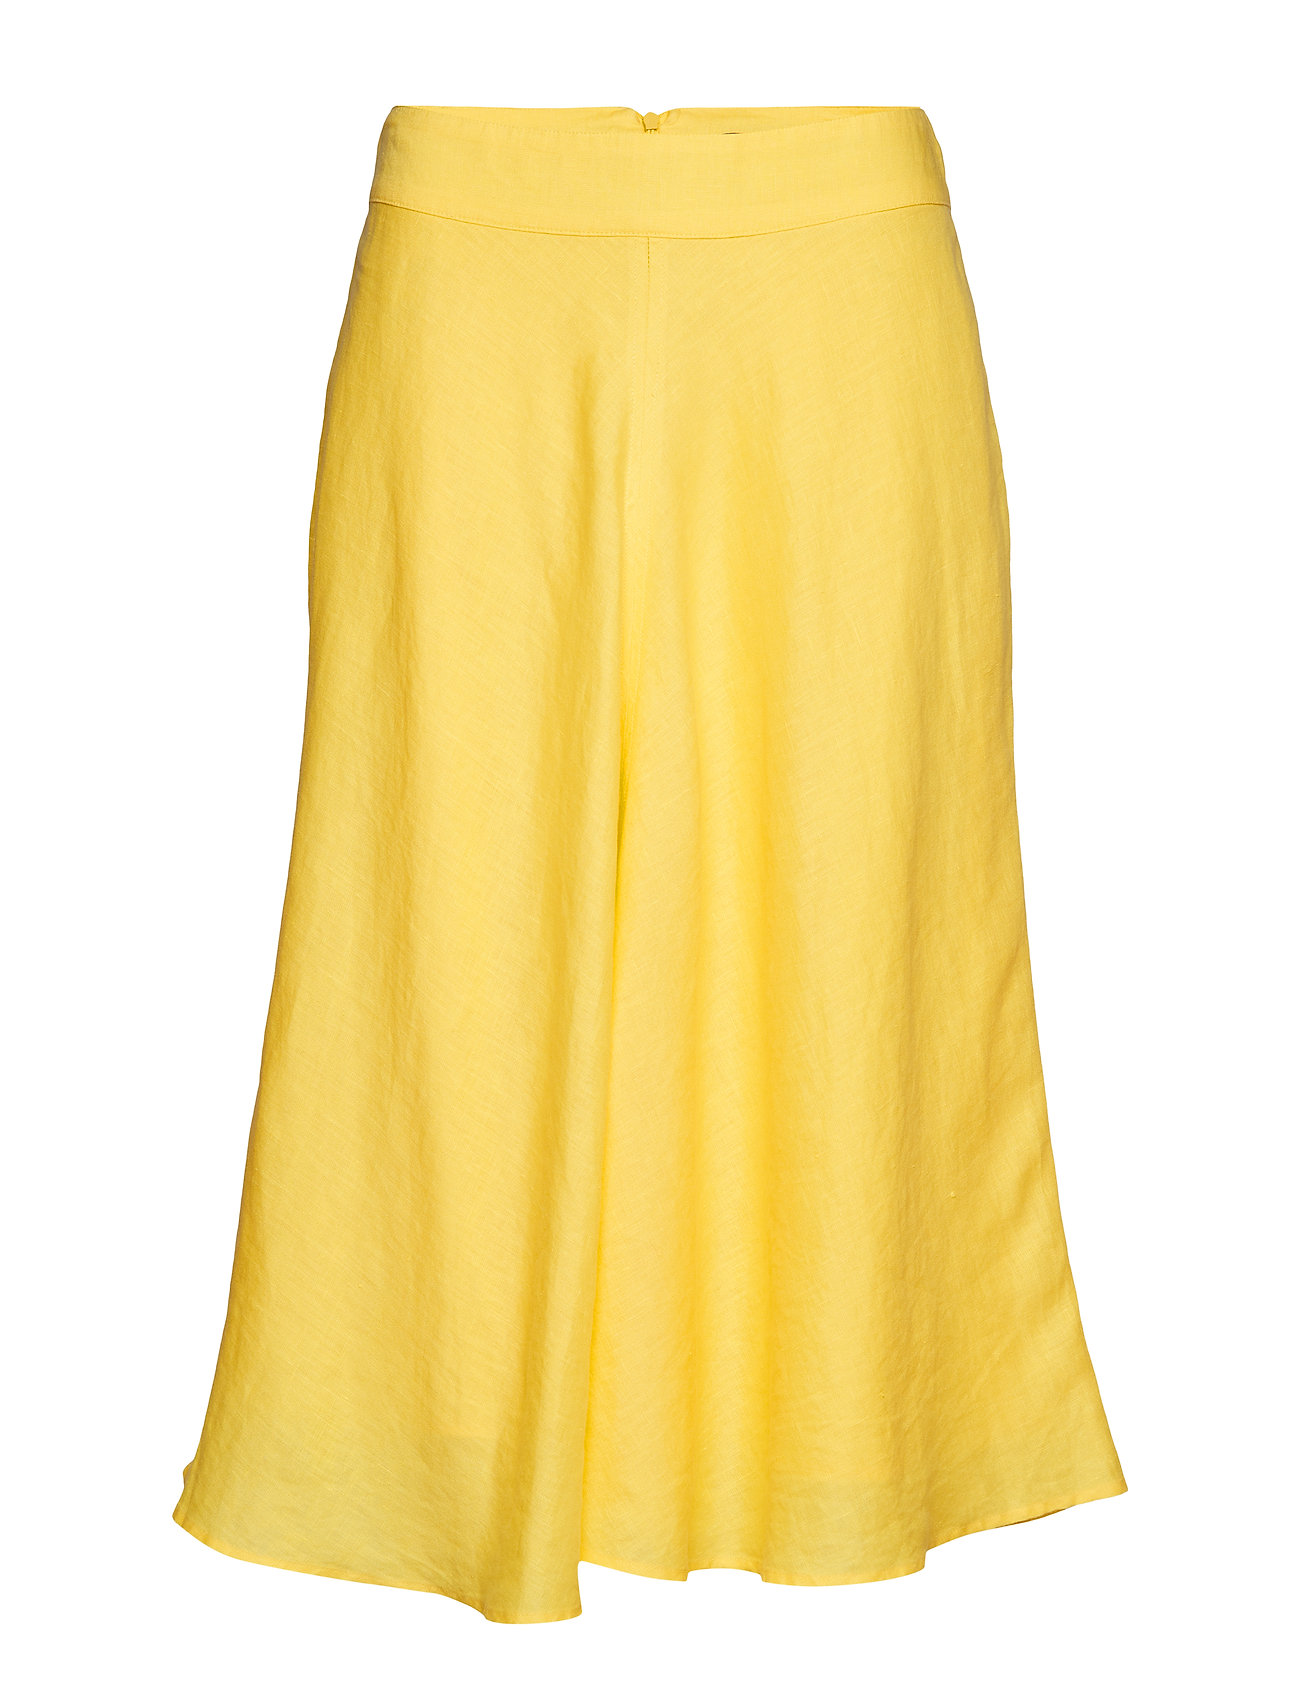 Light Light YellowEsprit Wovenbright Collection Skirts Collection Skirts Wovenbright YellowEsprit iPuwOkXZTl